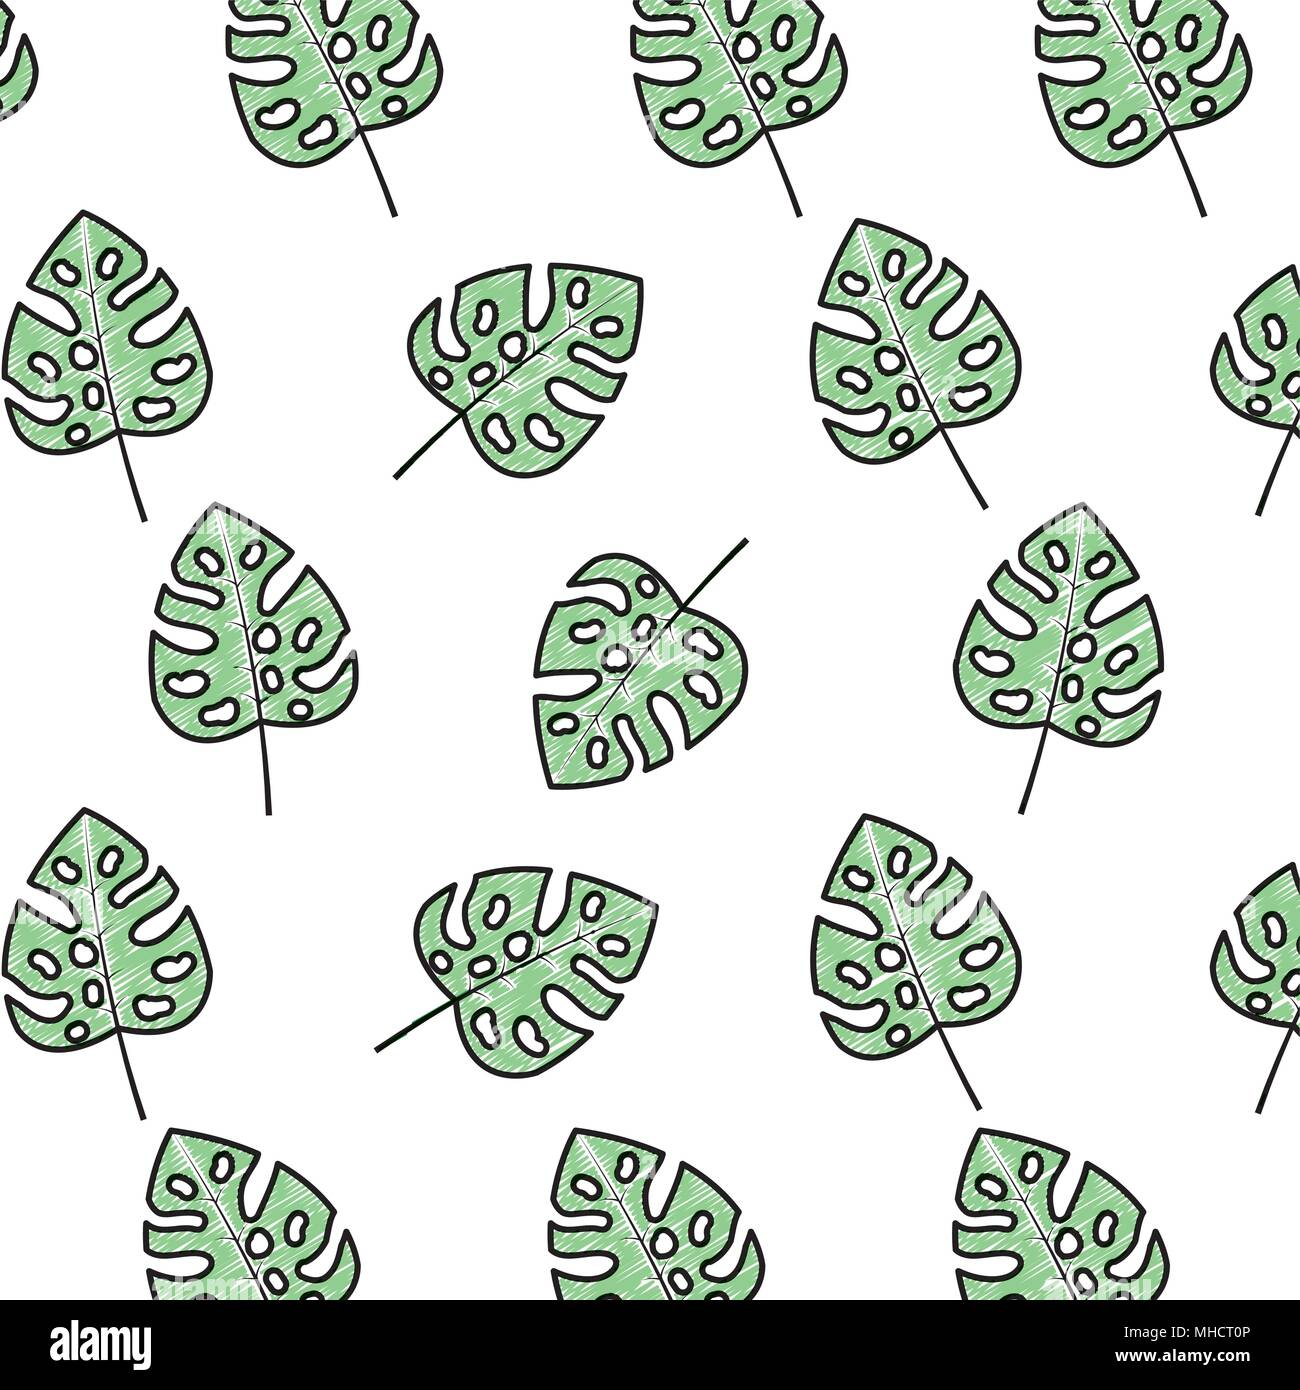 Doodle Tropical Leaf Natural Style Background Stock Vector Image Art Alamy «#tropical #leaves #doodle #feathers #firstinawhile #be #creative #green». https www alamy com doodle tropical leaf natural style background image182835094 html